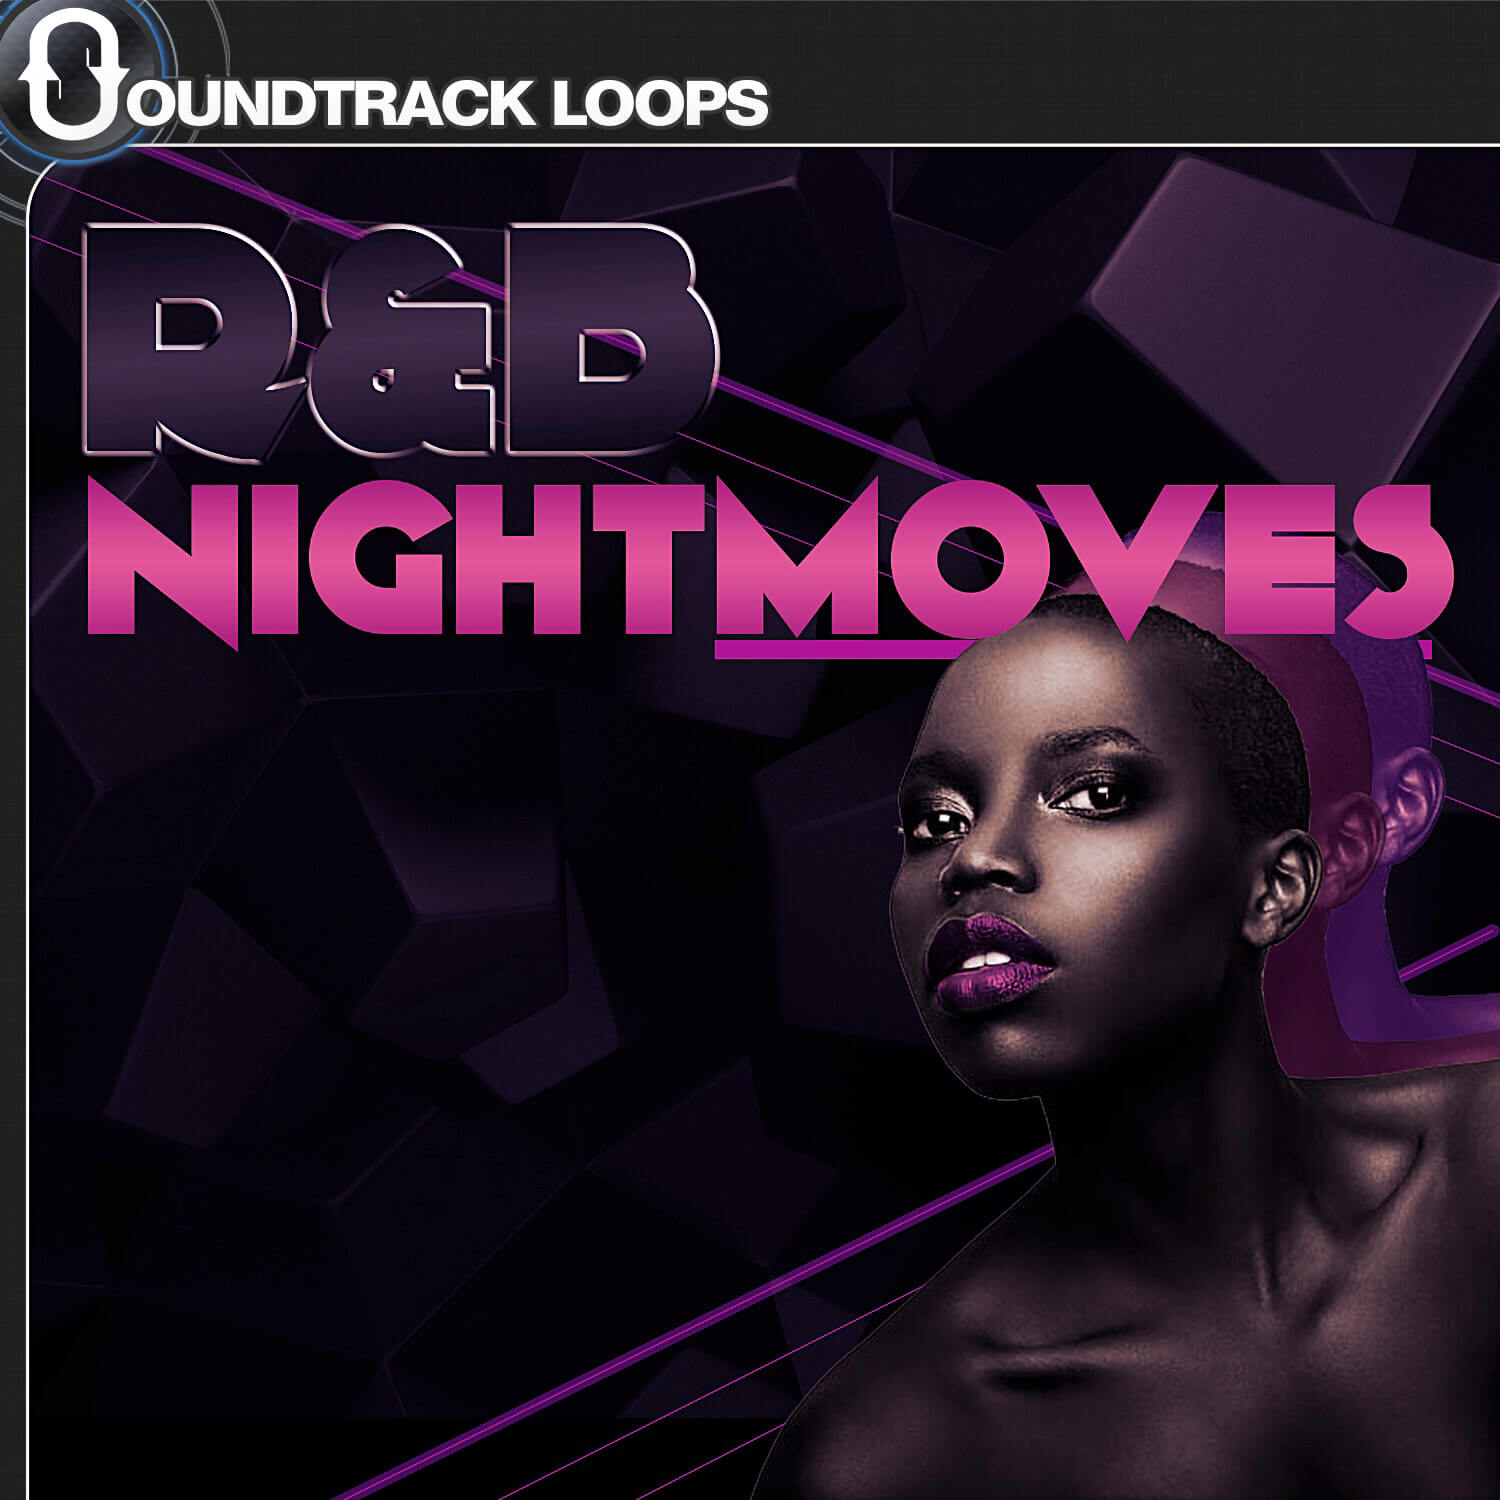 Night Moves - R&B Loops and MIDI Kits